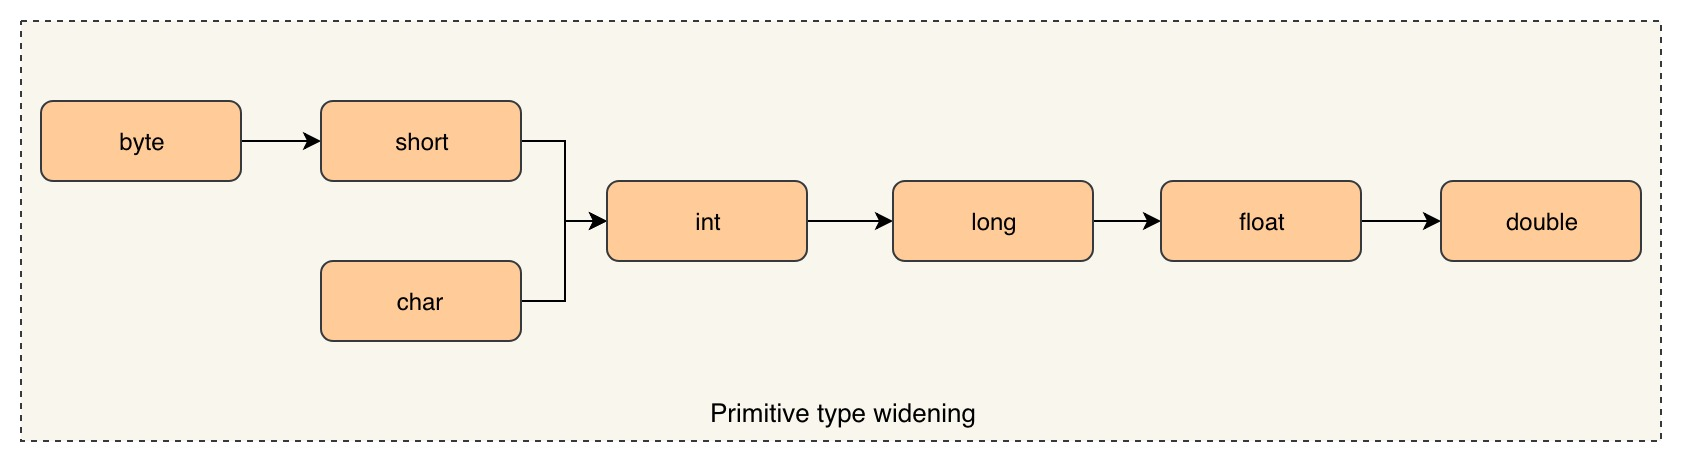 type widening